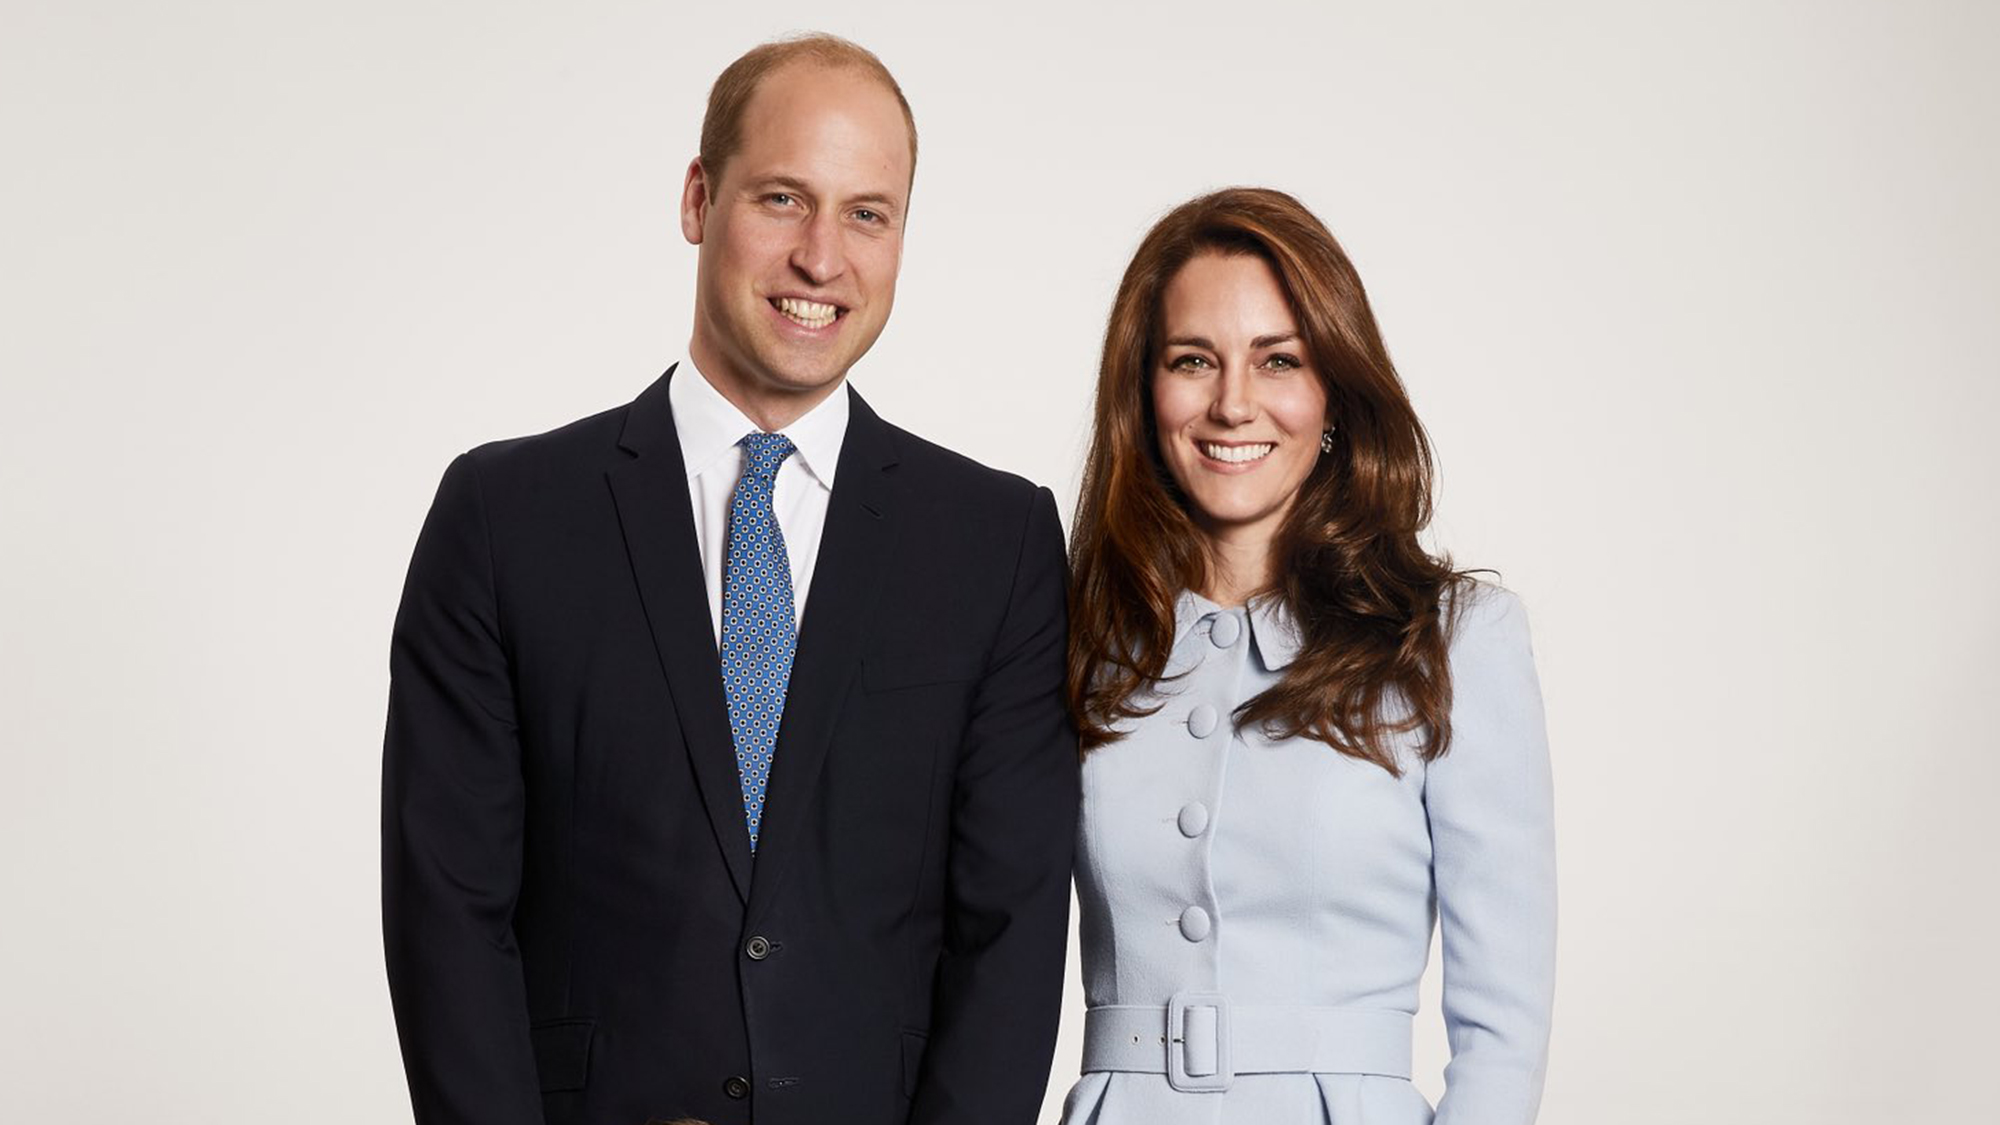 You probably missed Kate Middleton's subtle tribute to Diana in Royal Christmas card